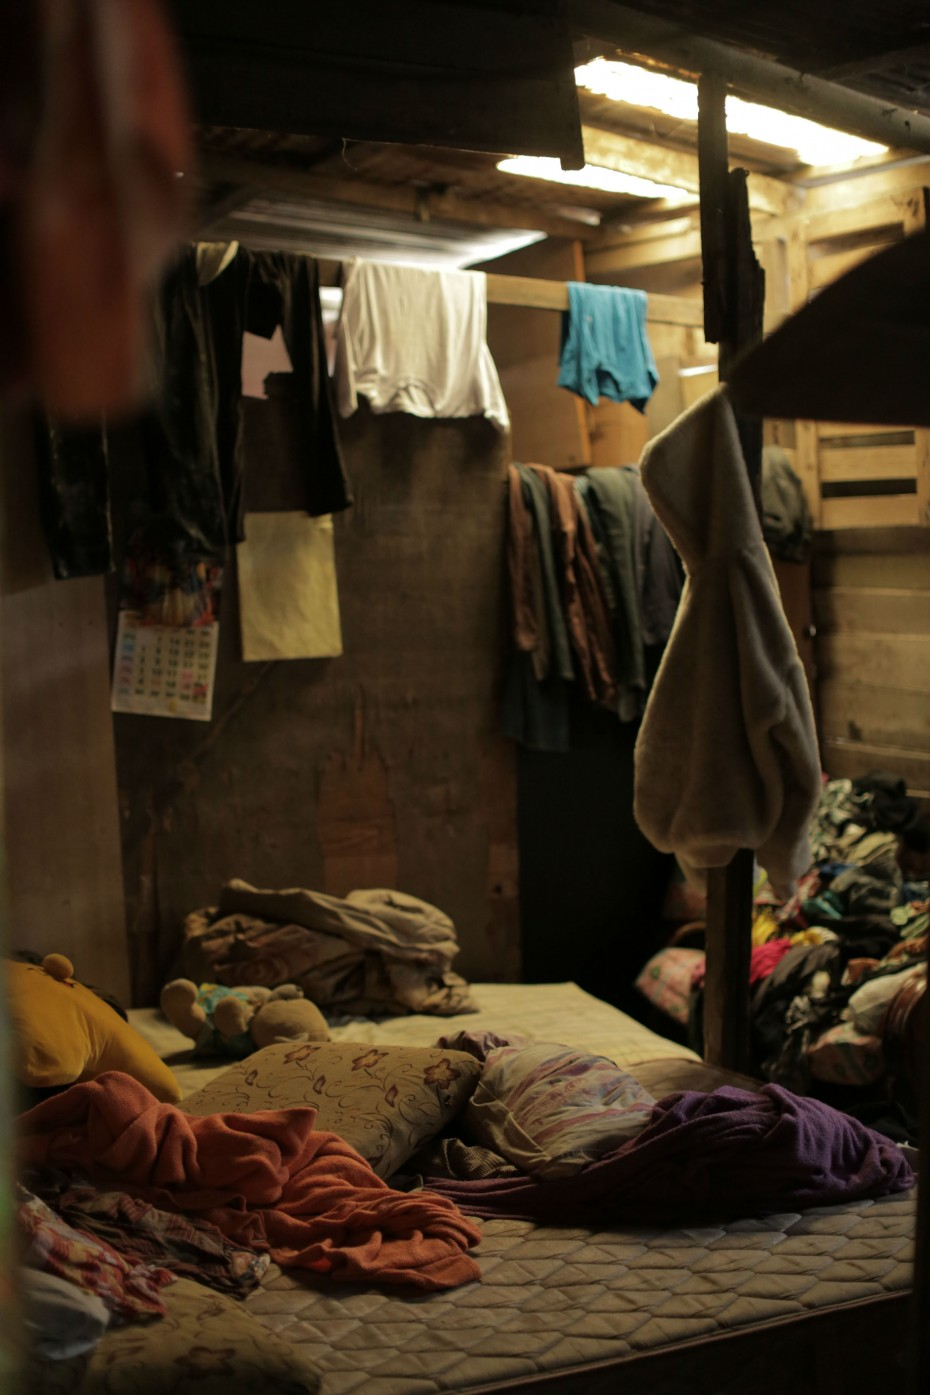 The bedroom where Mariyammah and her daughters sleep. Their home is basic, but to them it is home nonetheless. ― Photo by: ELROI YEE/The Star